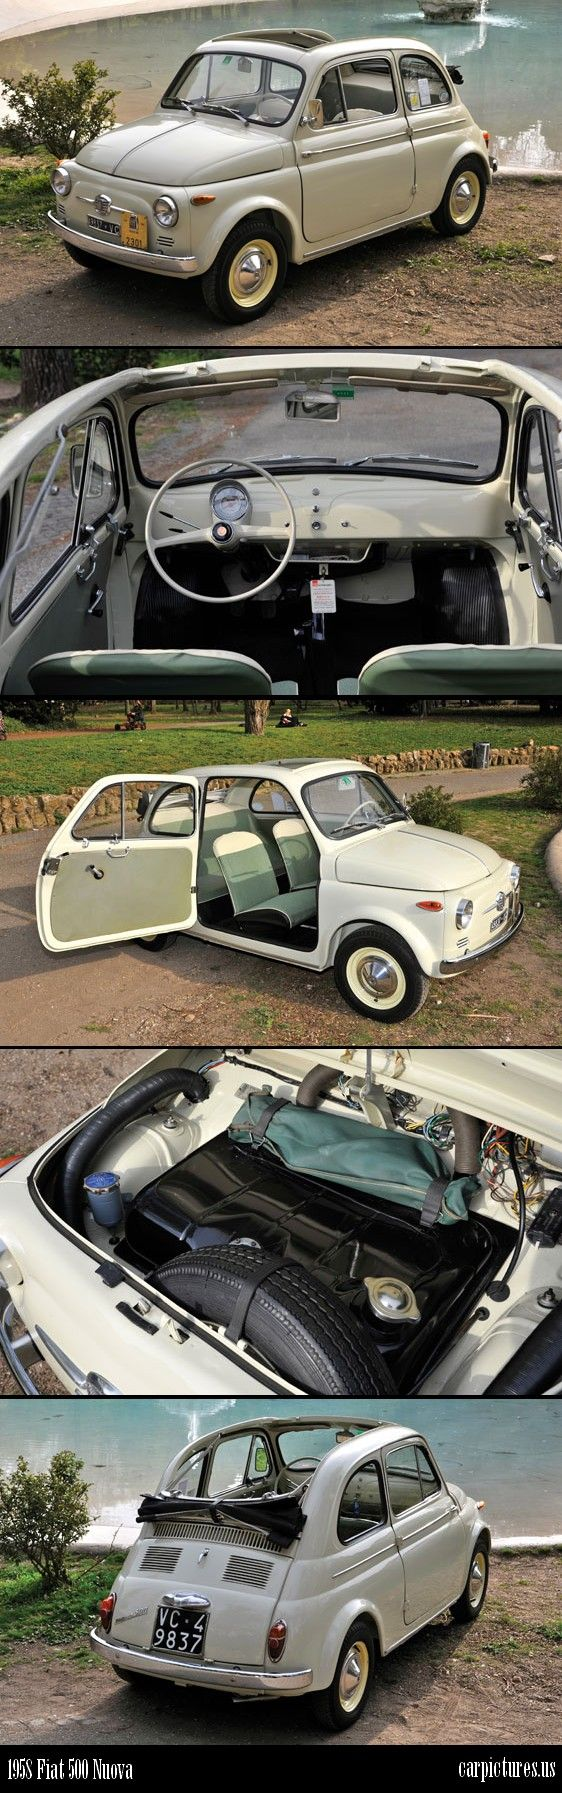 This 1958 Fiat 500 Nuova, especially the way the convertible slides back, must have been the inspiration for the 2012 fiat 500 model.